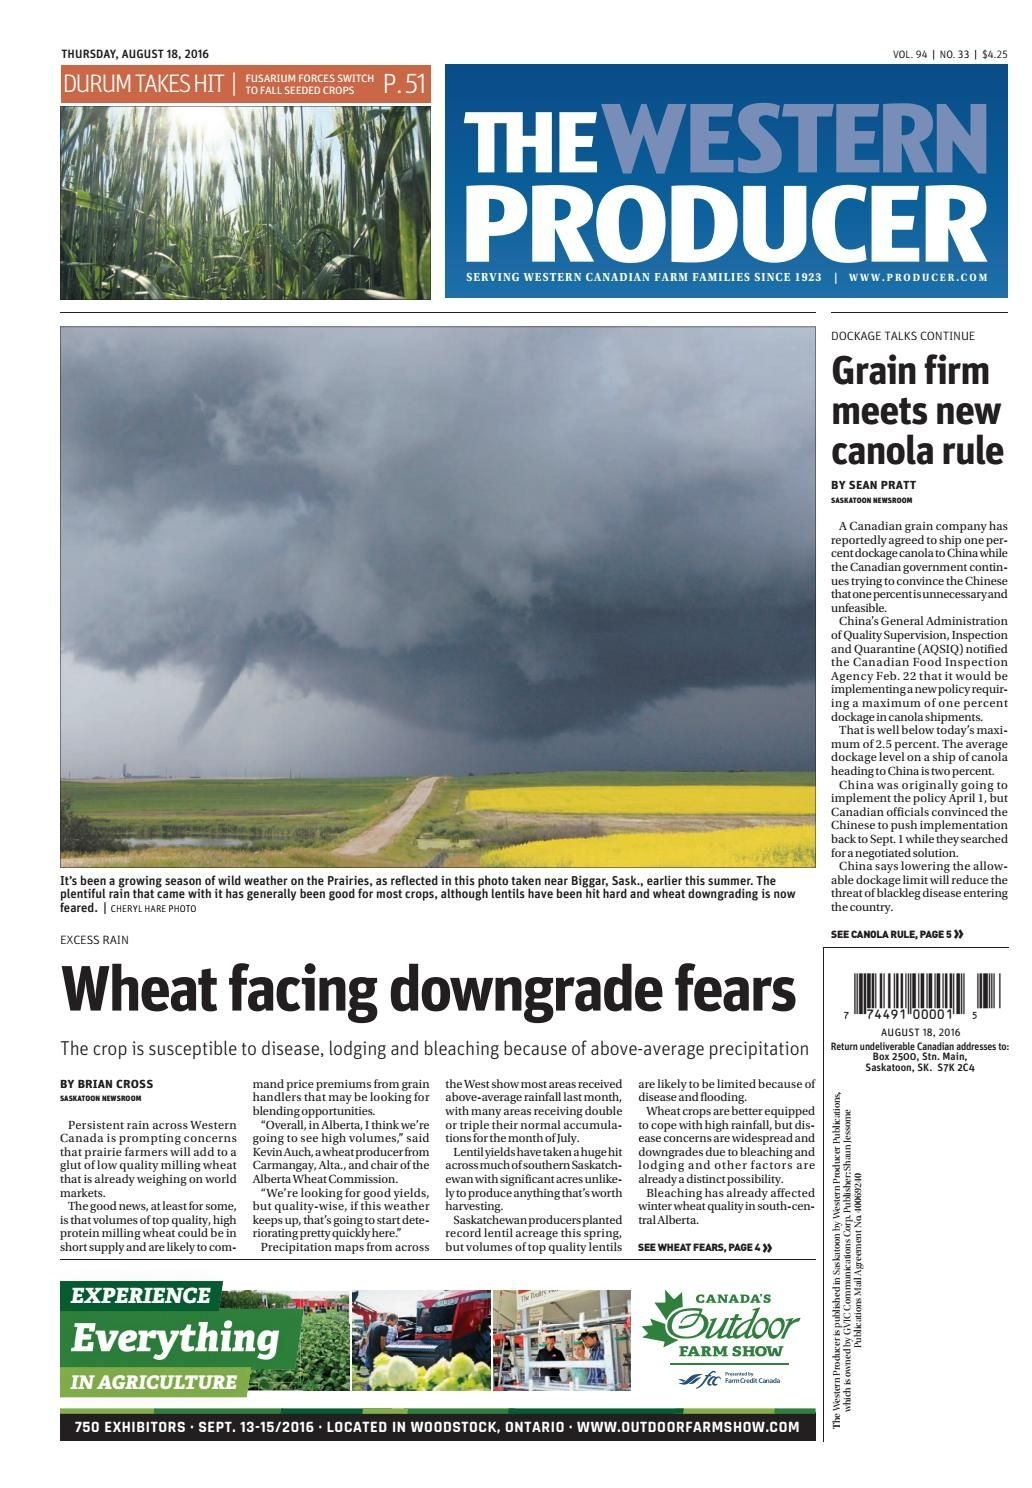 The Western Producer August 18, 2016 By The Western Producer